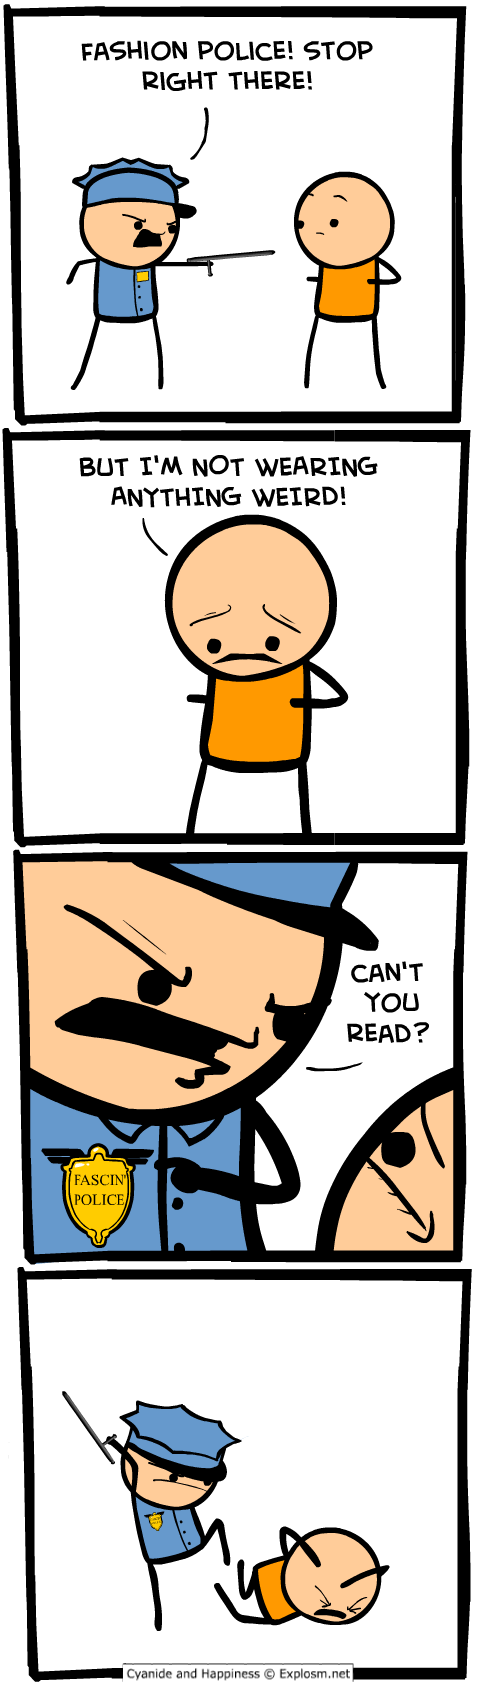 http://files.explosm.net/comics/Dave/fashionpolice.png